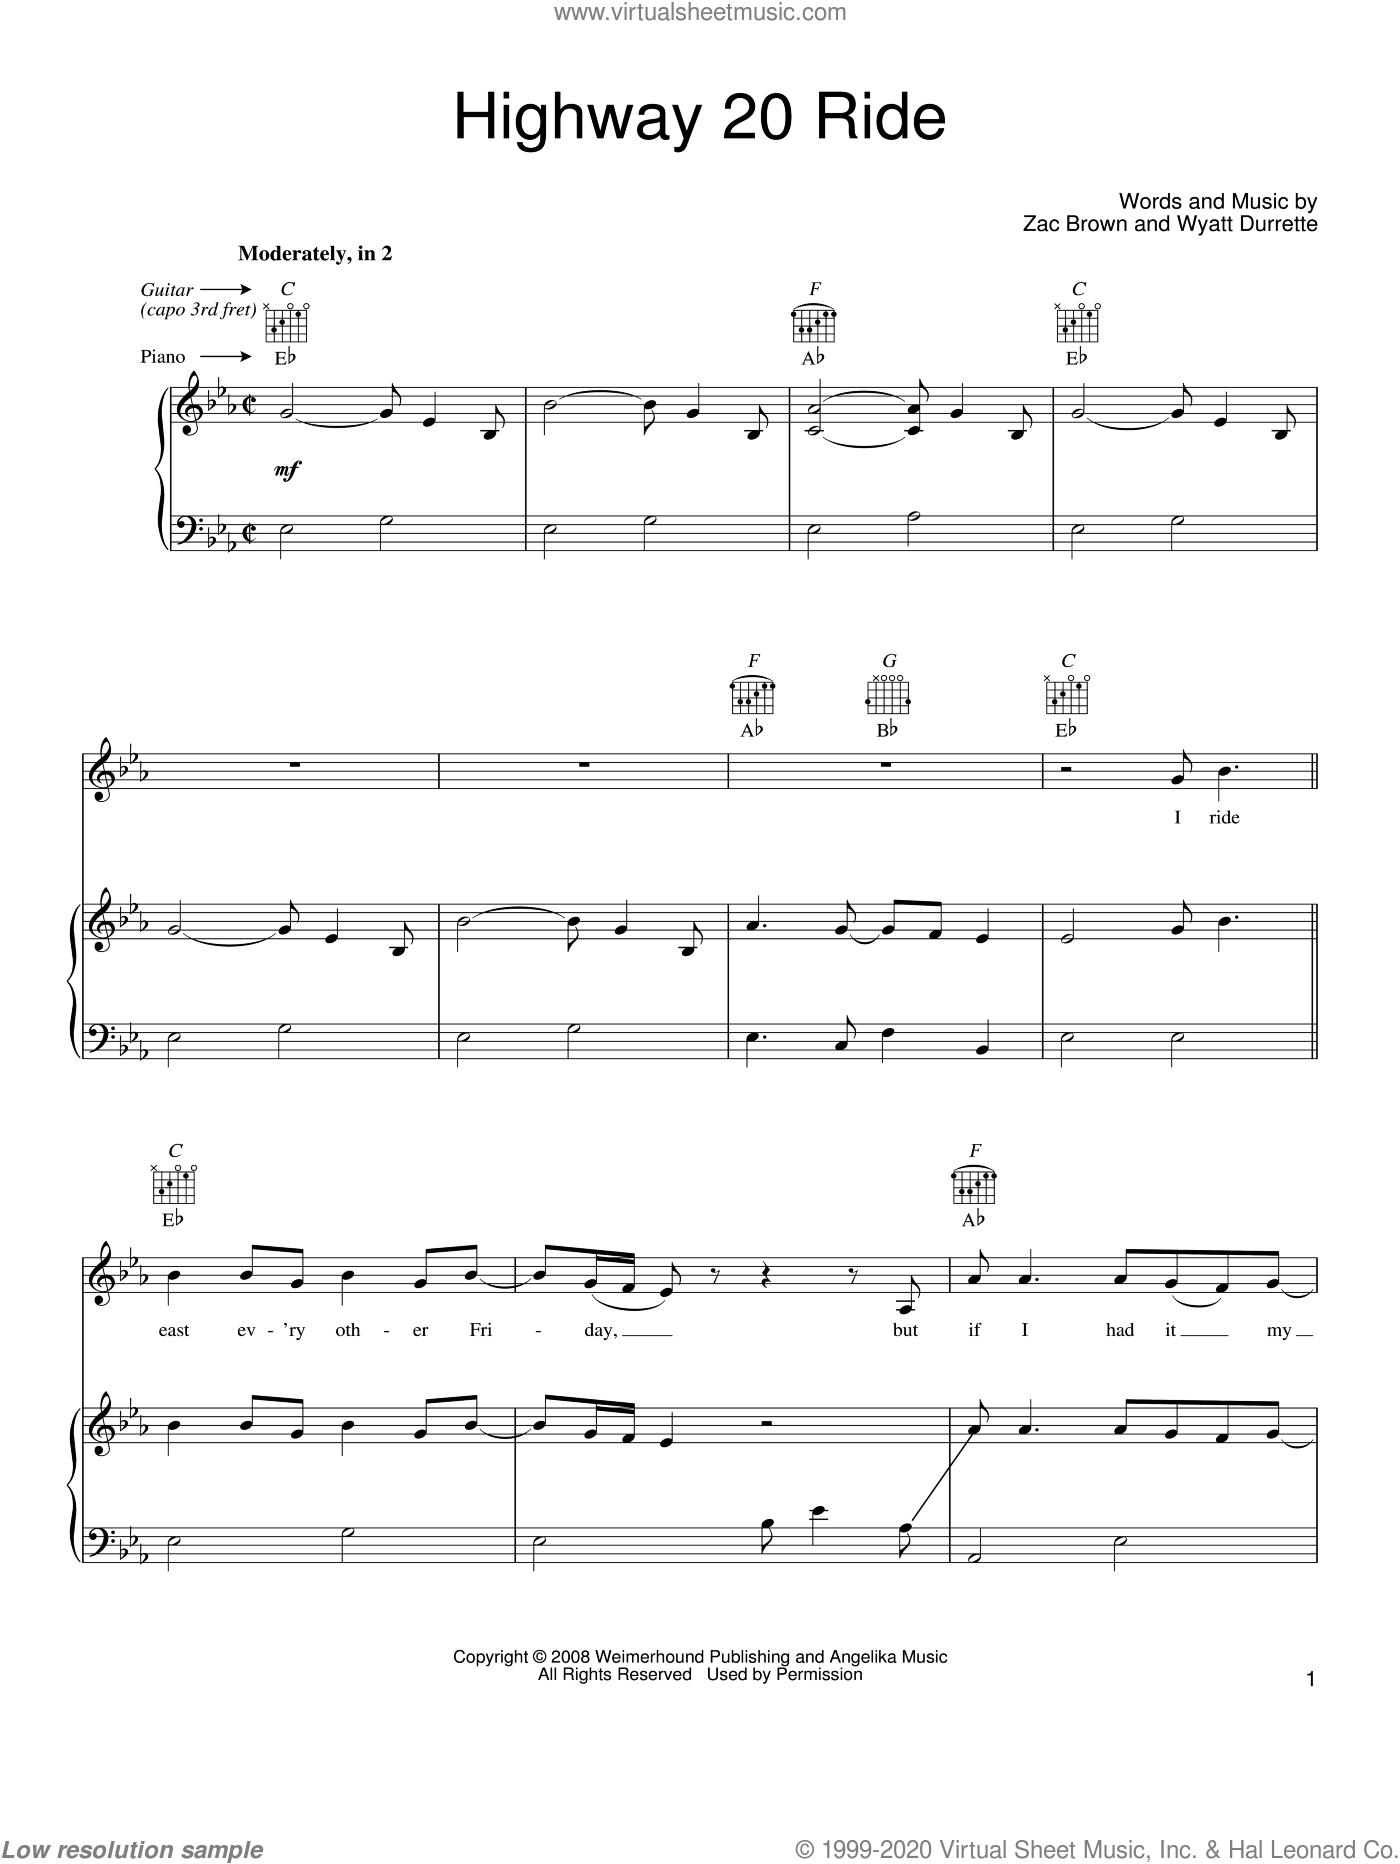 Highway 20 Ride sheet music for voice, piano or guitar by Zac Brown Band, Wyatt Durrette and Zac Brown, intermediate skill level